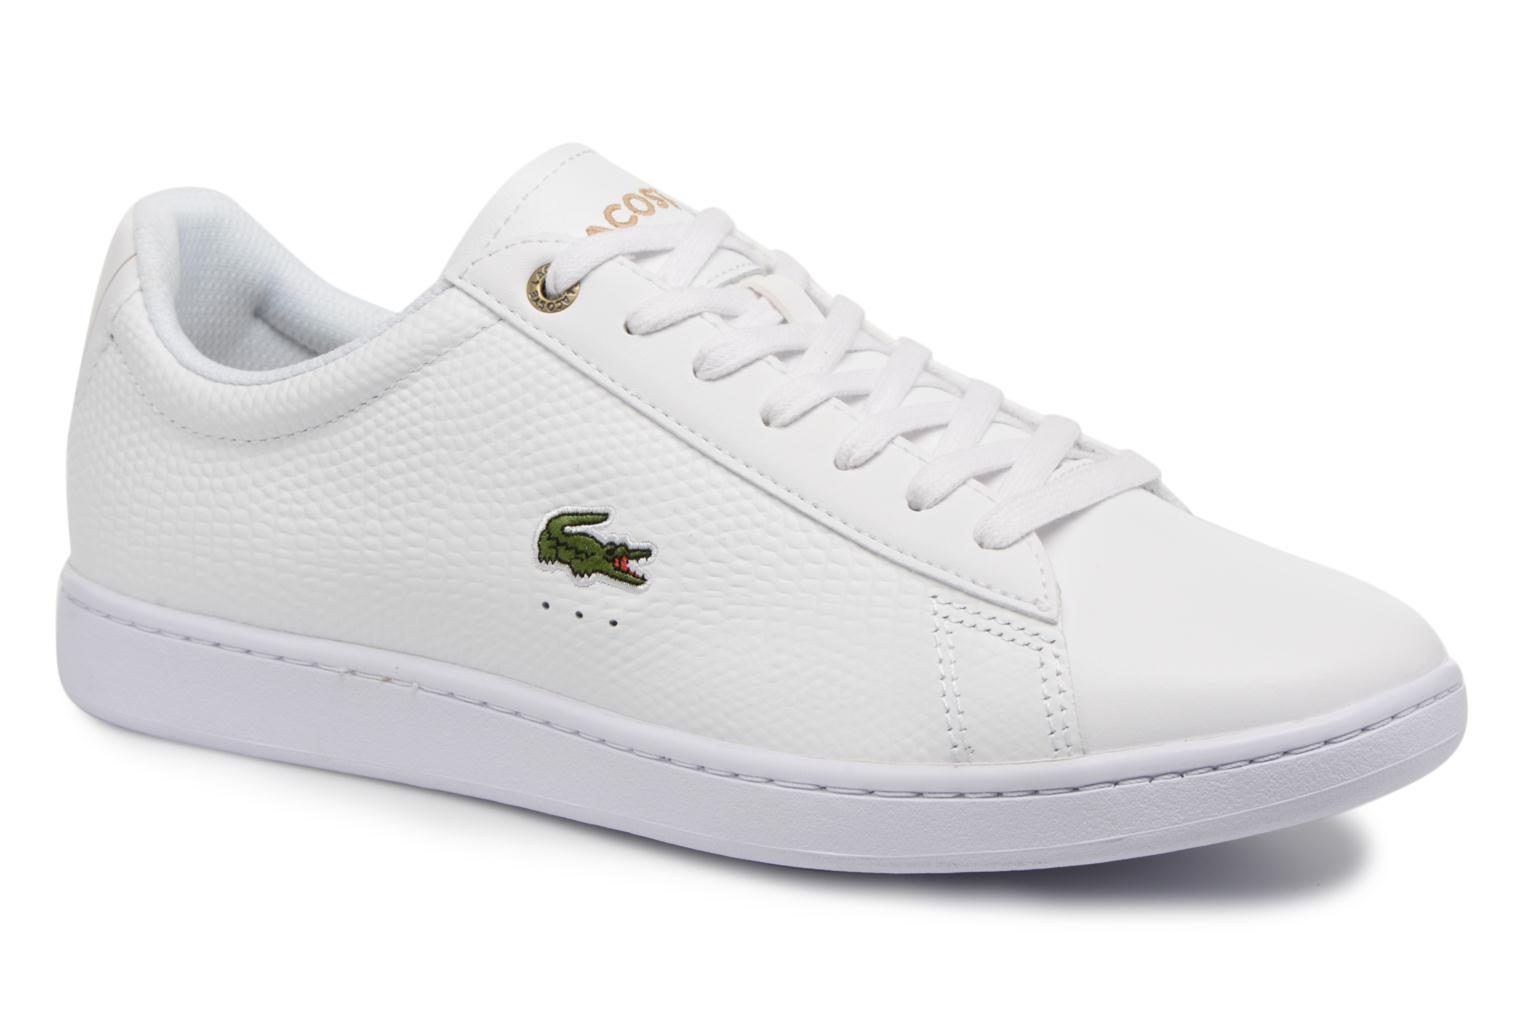 CARNABY EVO 118 2 by Lacoste